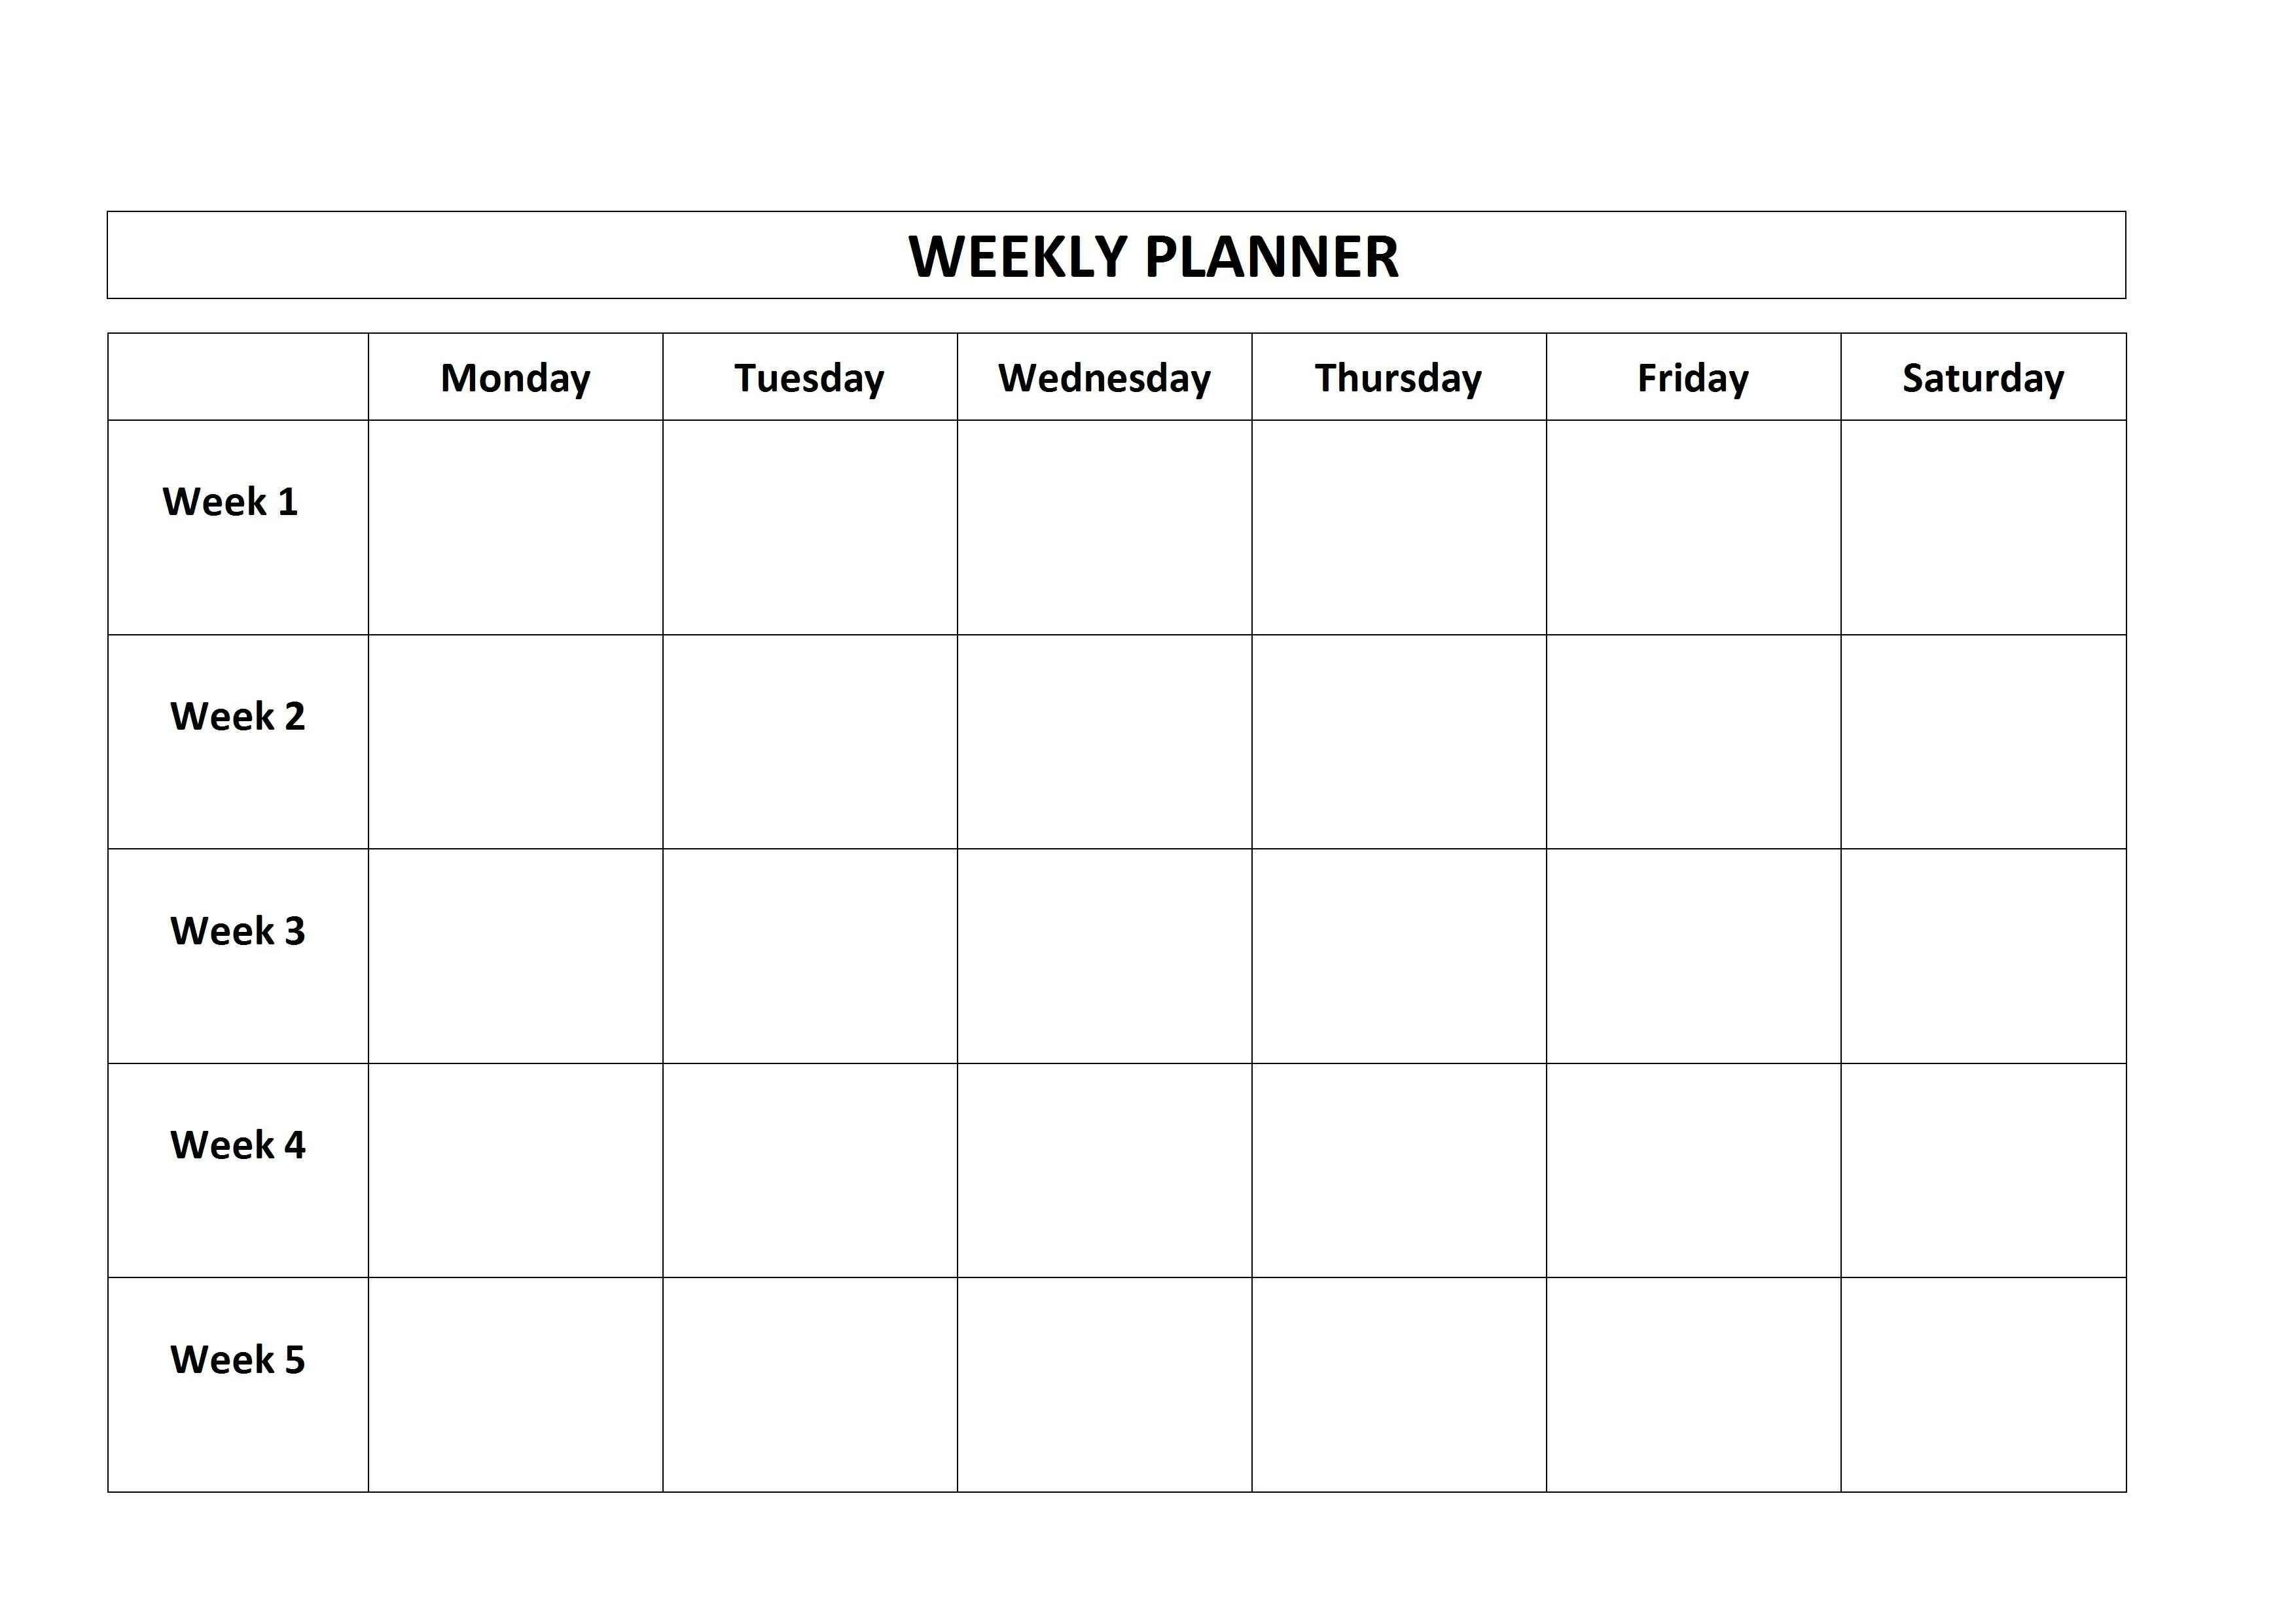 Blank Calendar 5 Day Week | Example Calendar Printable regarding Printable 5 Day Week Calendar